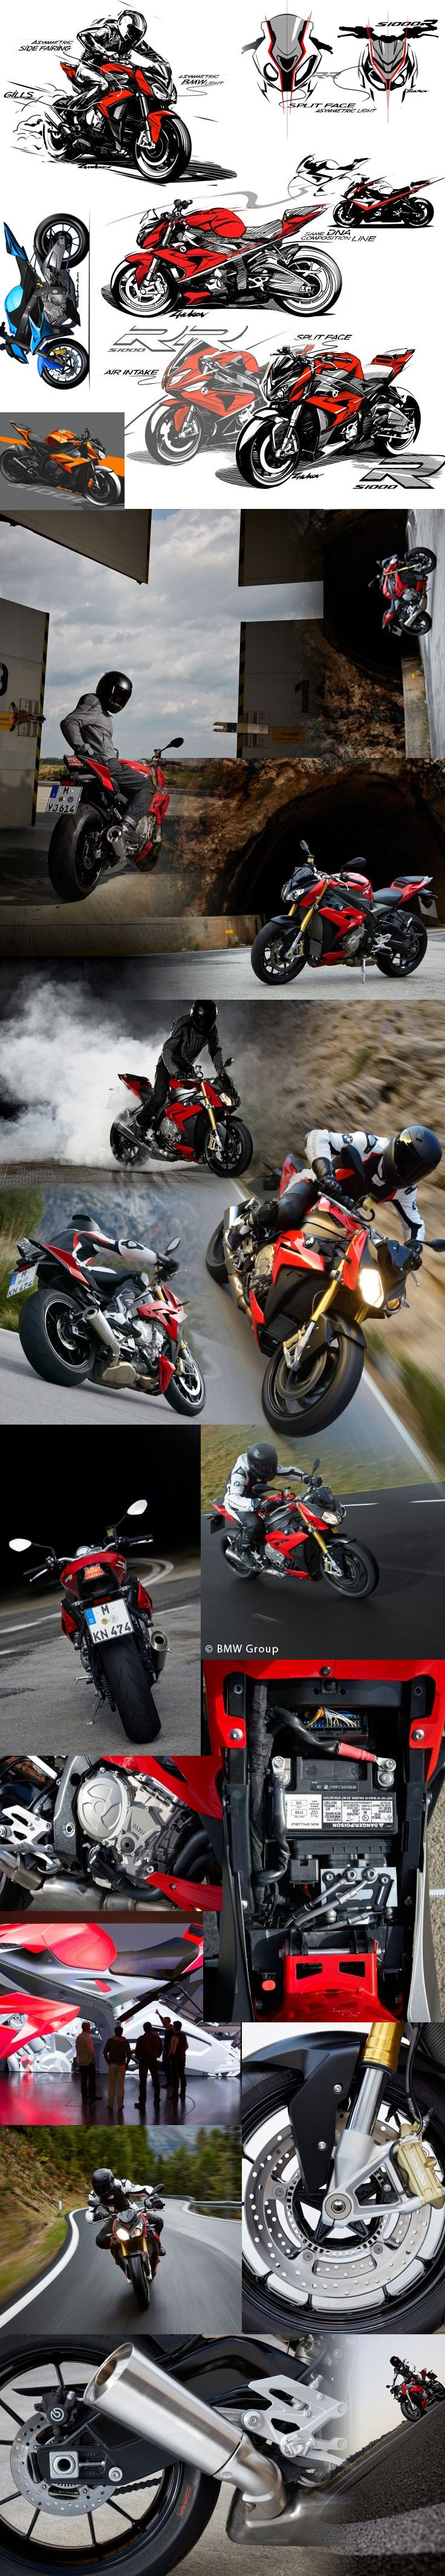 The new BMW S 1000 R. More - https://www.facebook.com/media/set/?set=a.485269971591927.1073741843.383956825056576&type=3